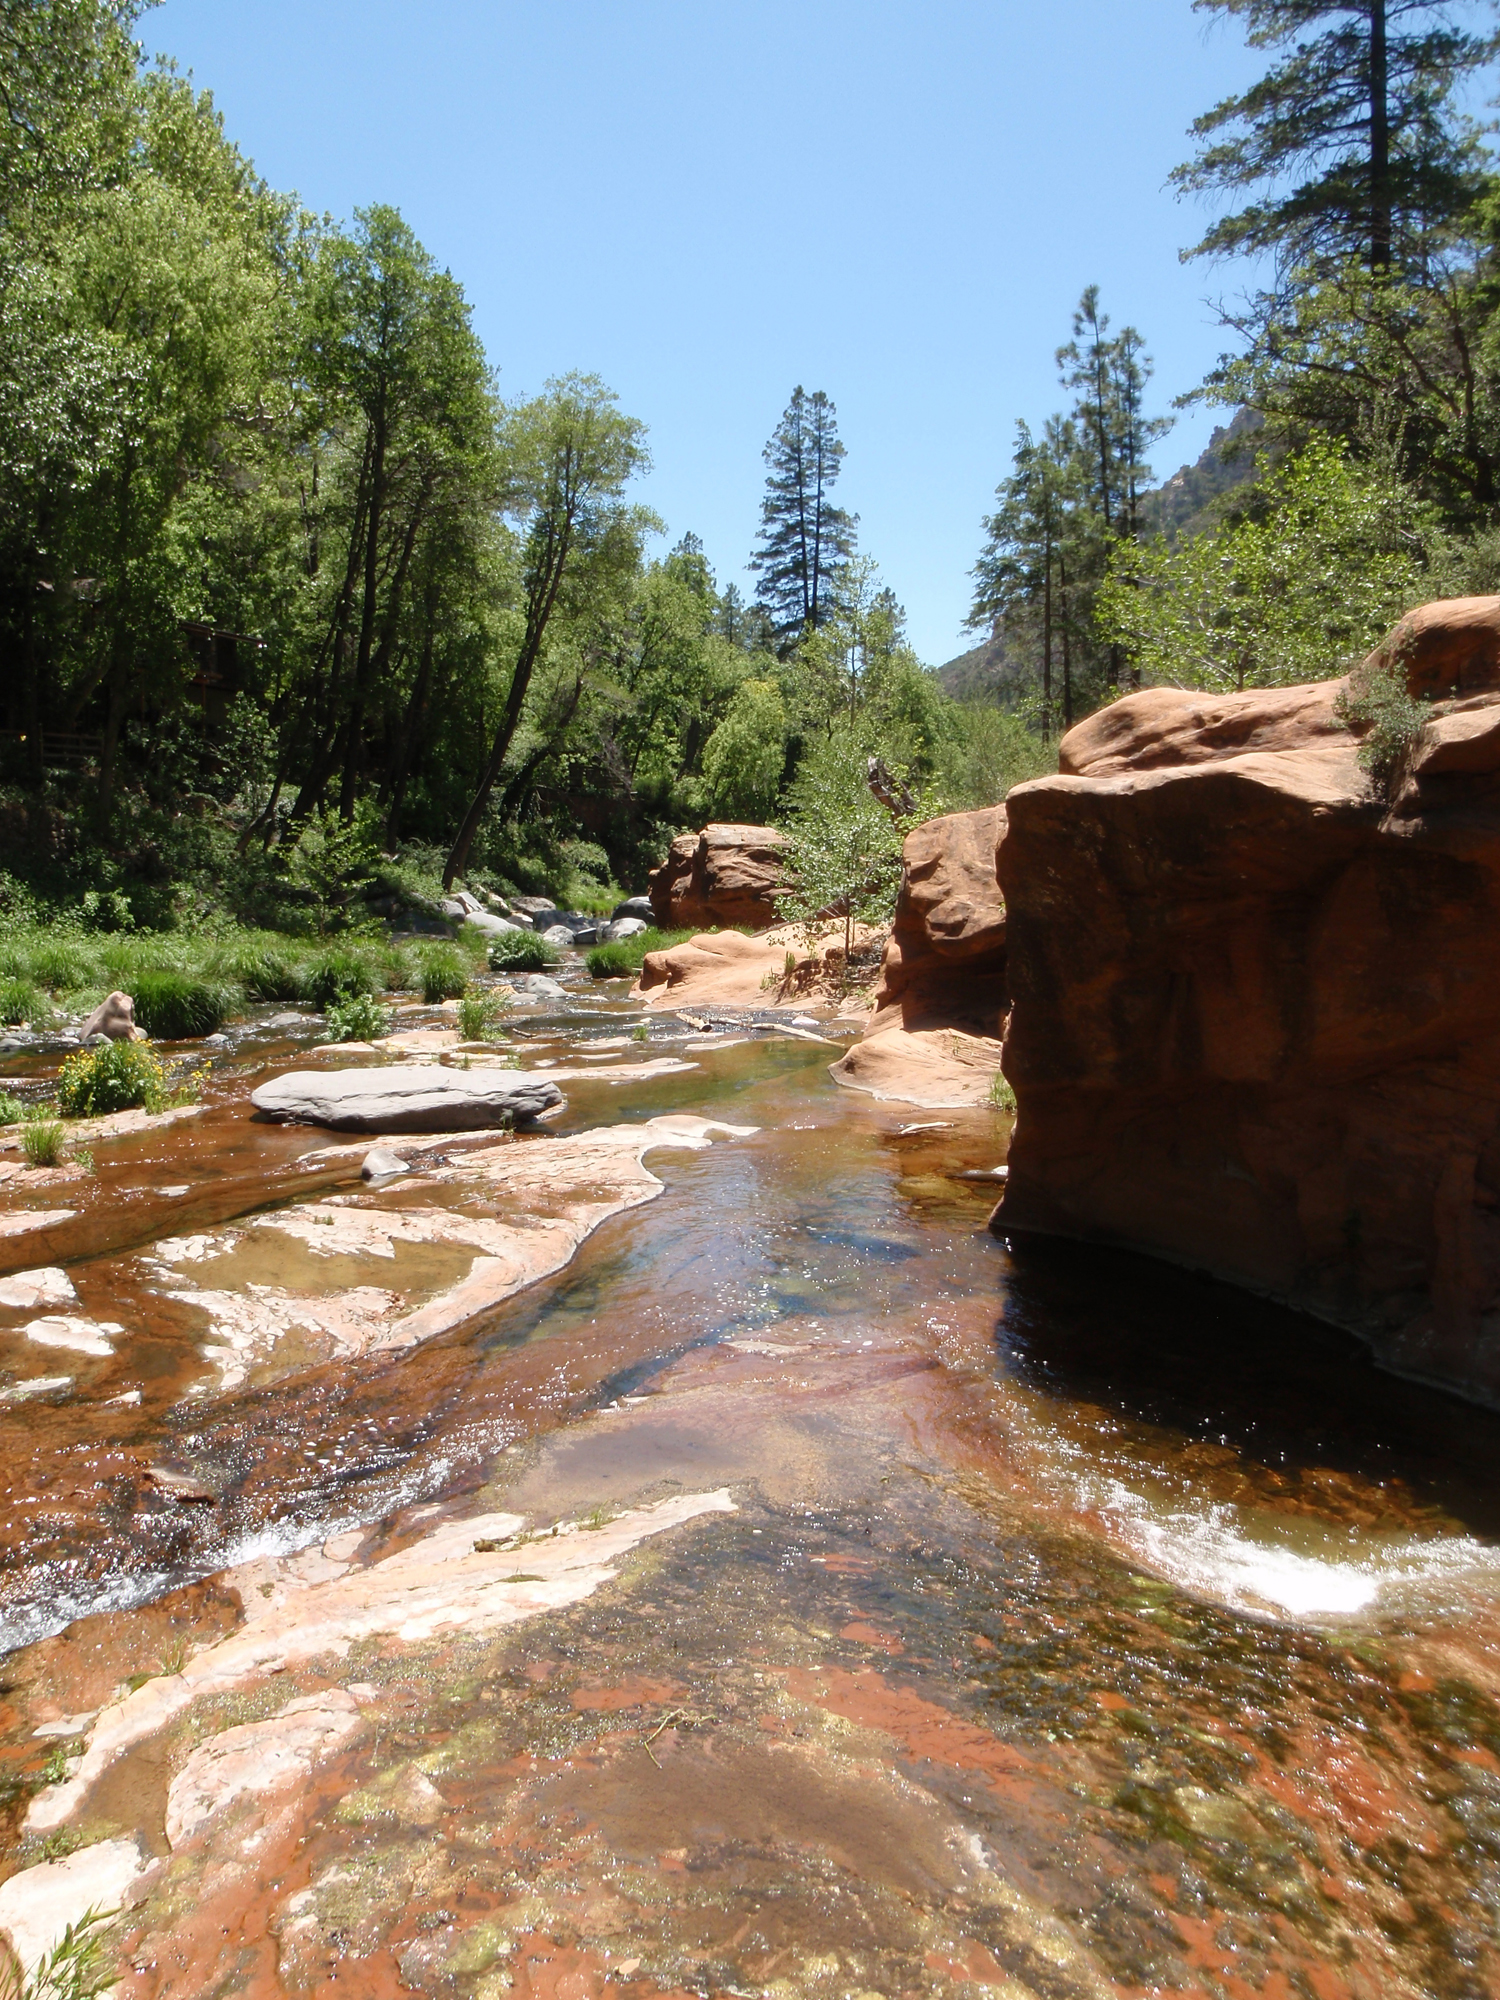 A wide stream flows over rocks between tree covered shores